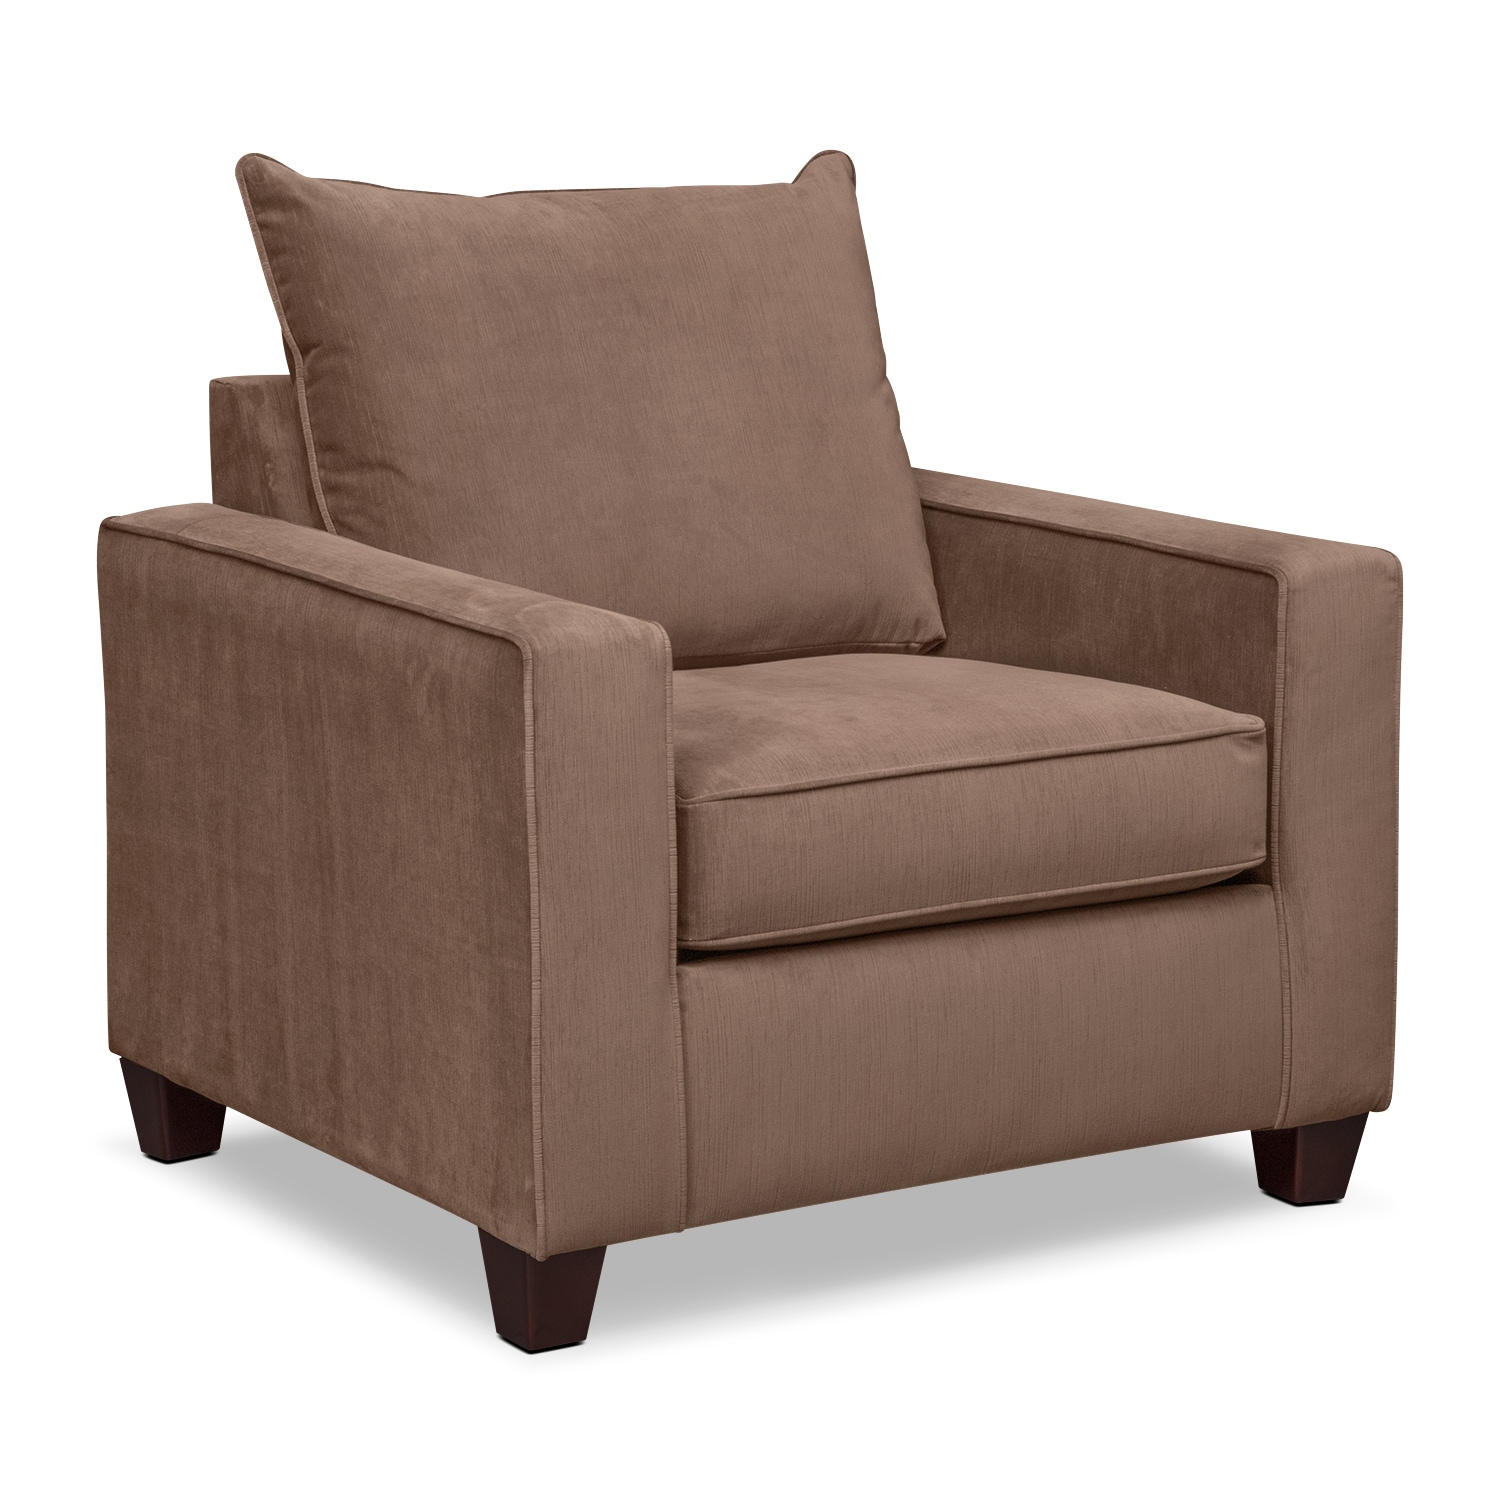 Living Room Furniture - Bryden Chair - Chocolate